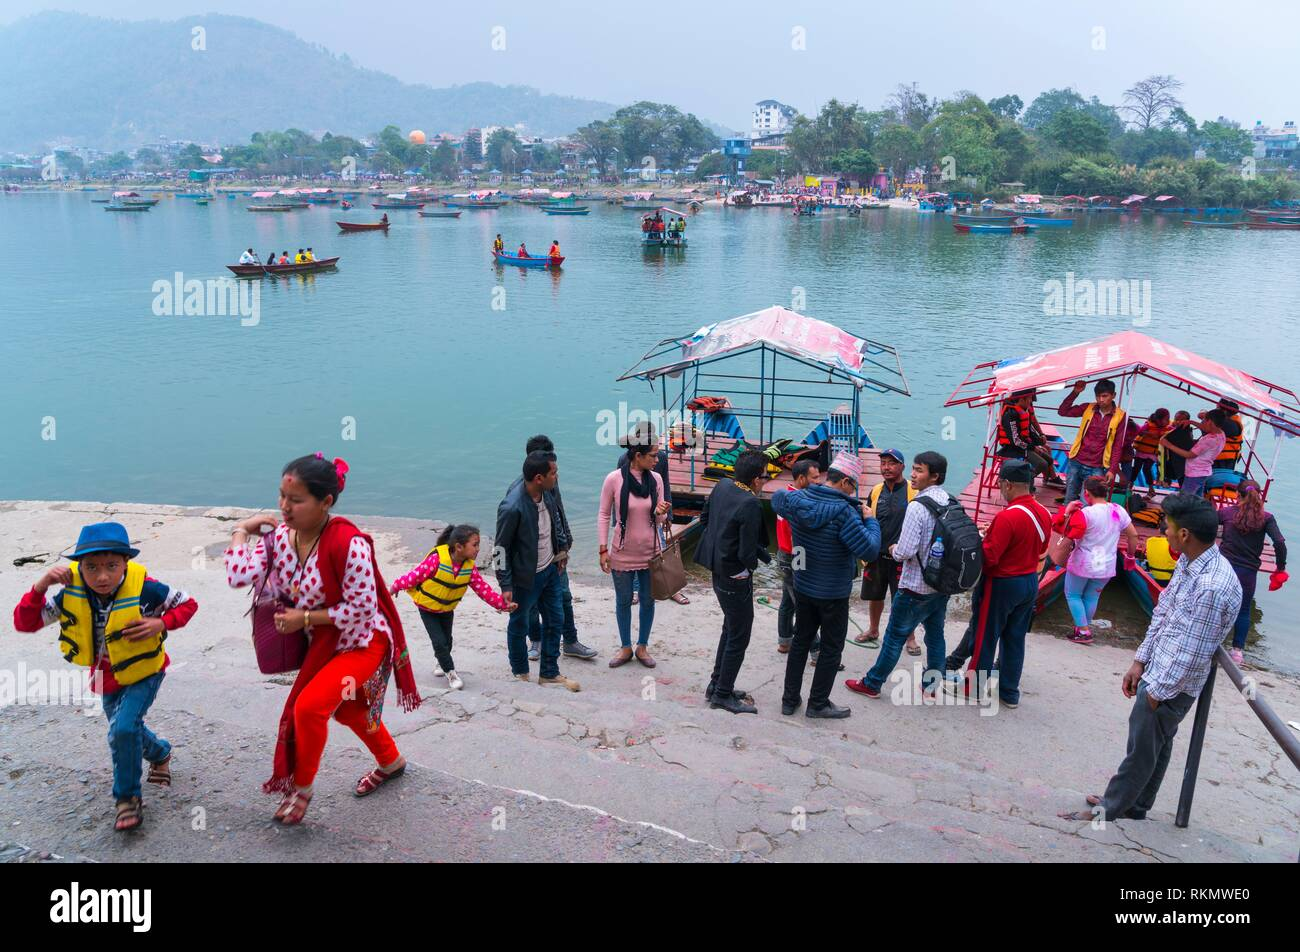 Recreation boats, Phewa Lake, Pokhara, Nepal, Asia. - Stock Image